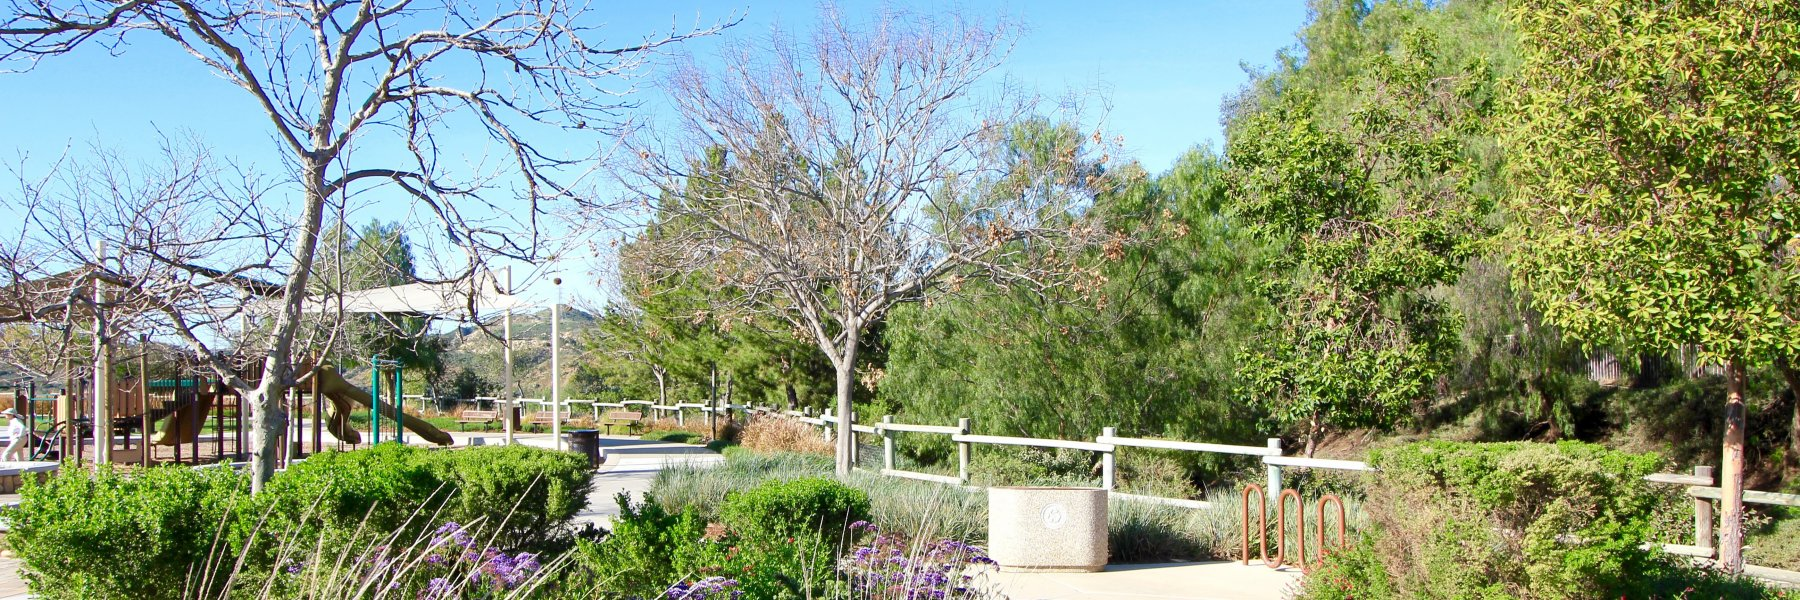 Portola Hills is a community of homes in Lake Forest California